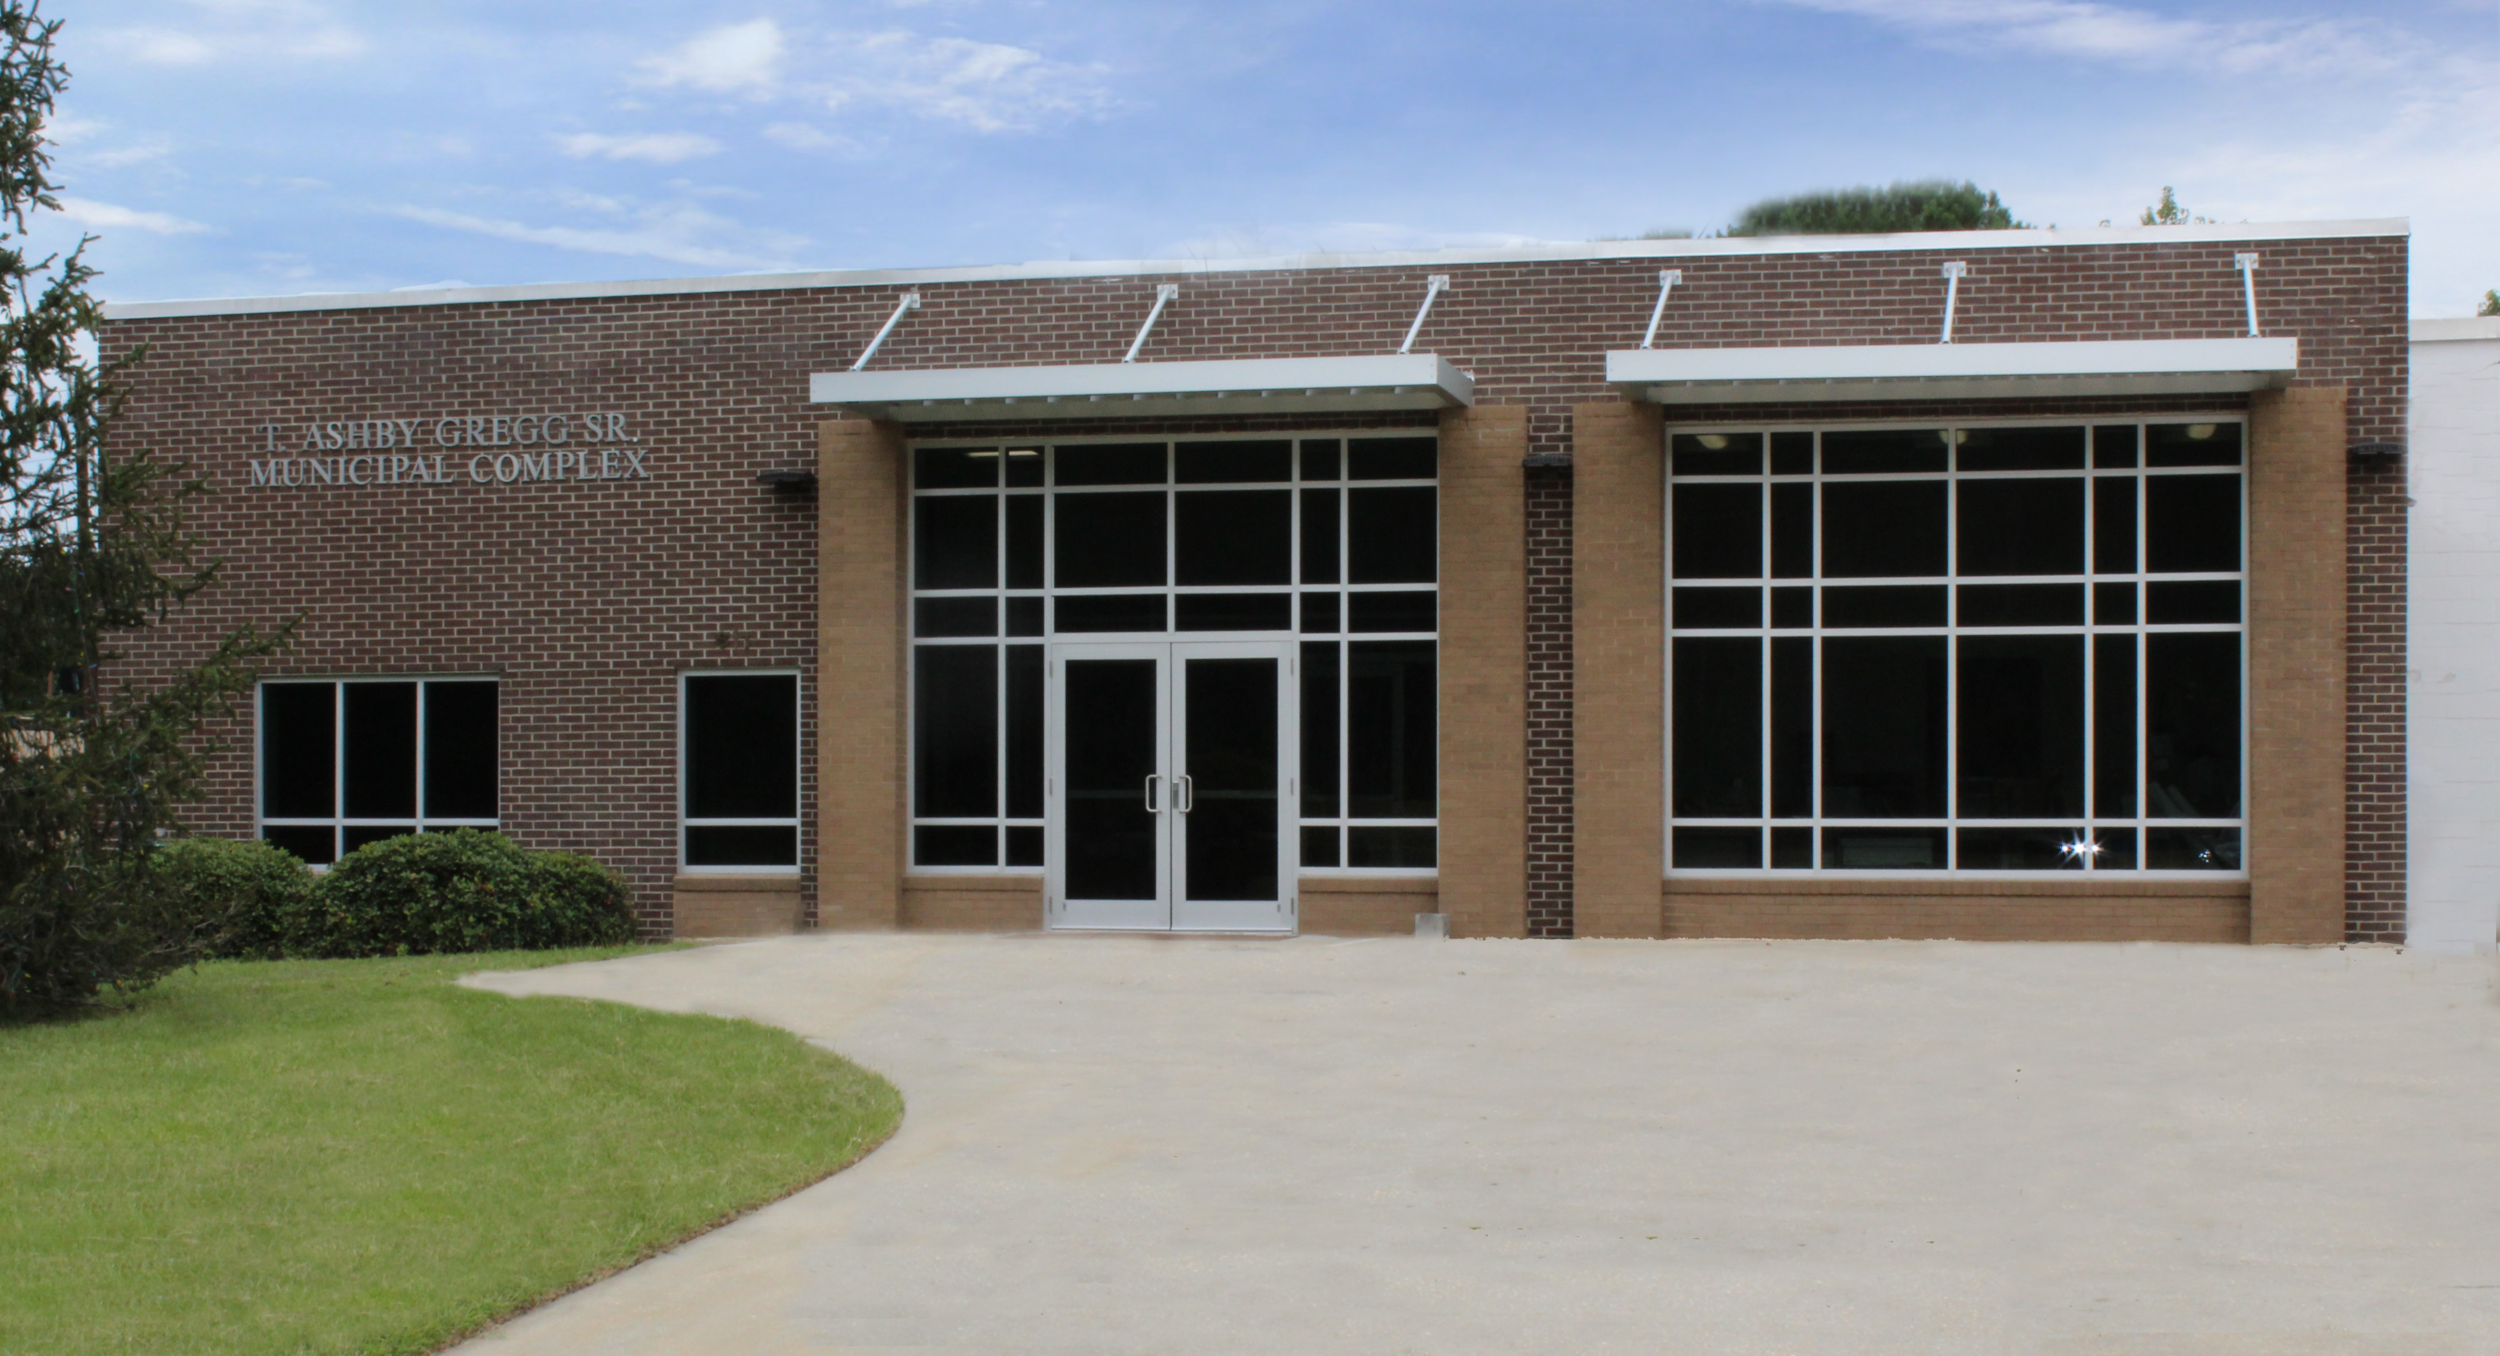 Town of Quinby Municipal Complex   Brownstone Design was hired for architectural design services for two projects in Florence County. One of the projects is a renovation of an existing fire station into a new Town Hall.